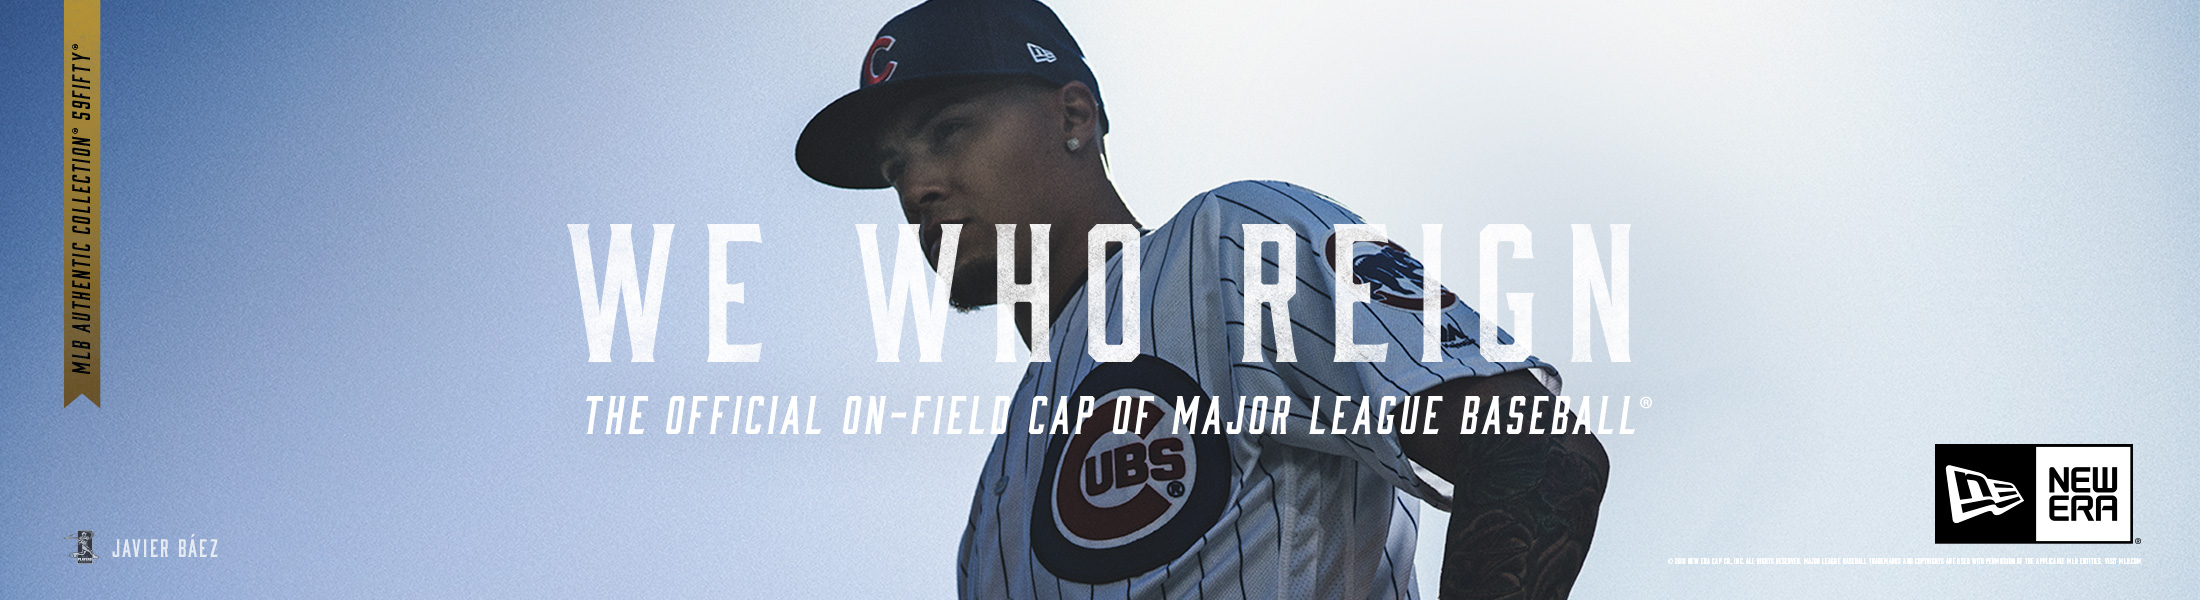 Chicago Cubs 2018 Caps by New Era